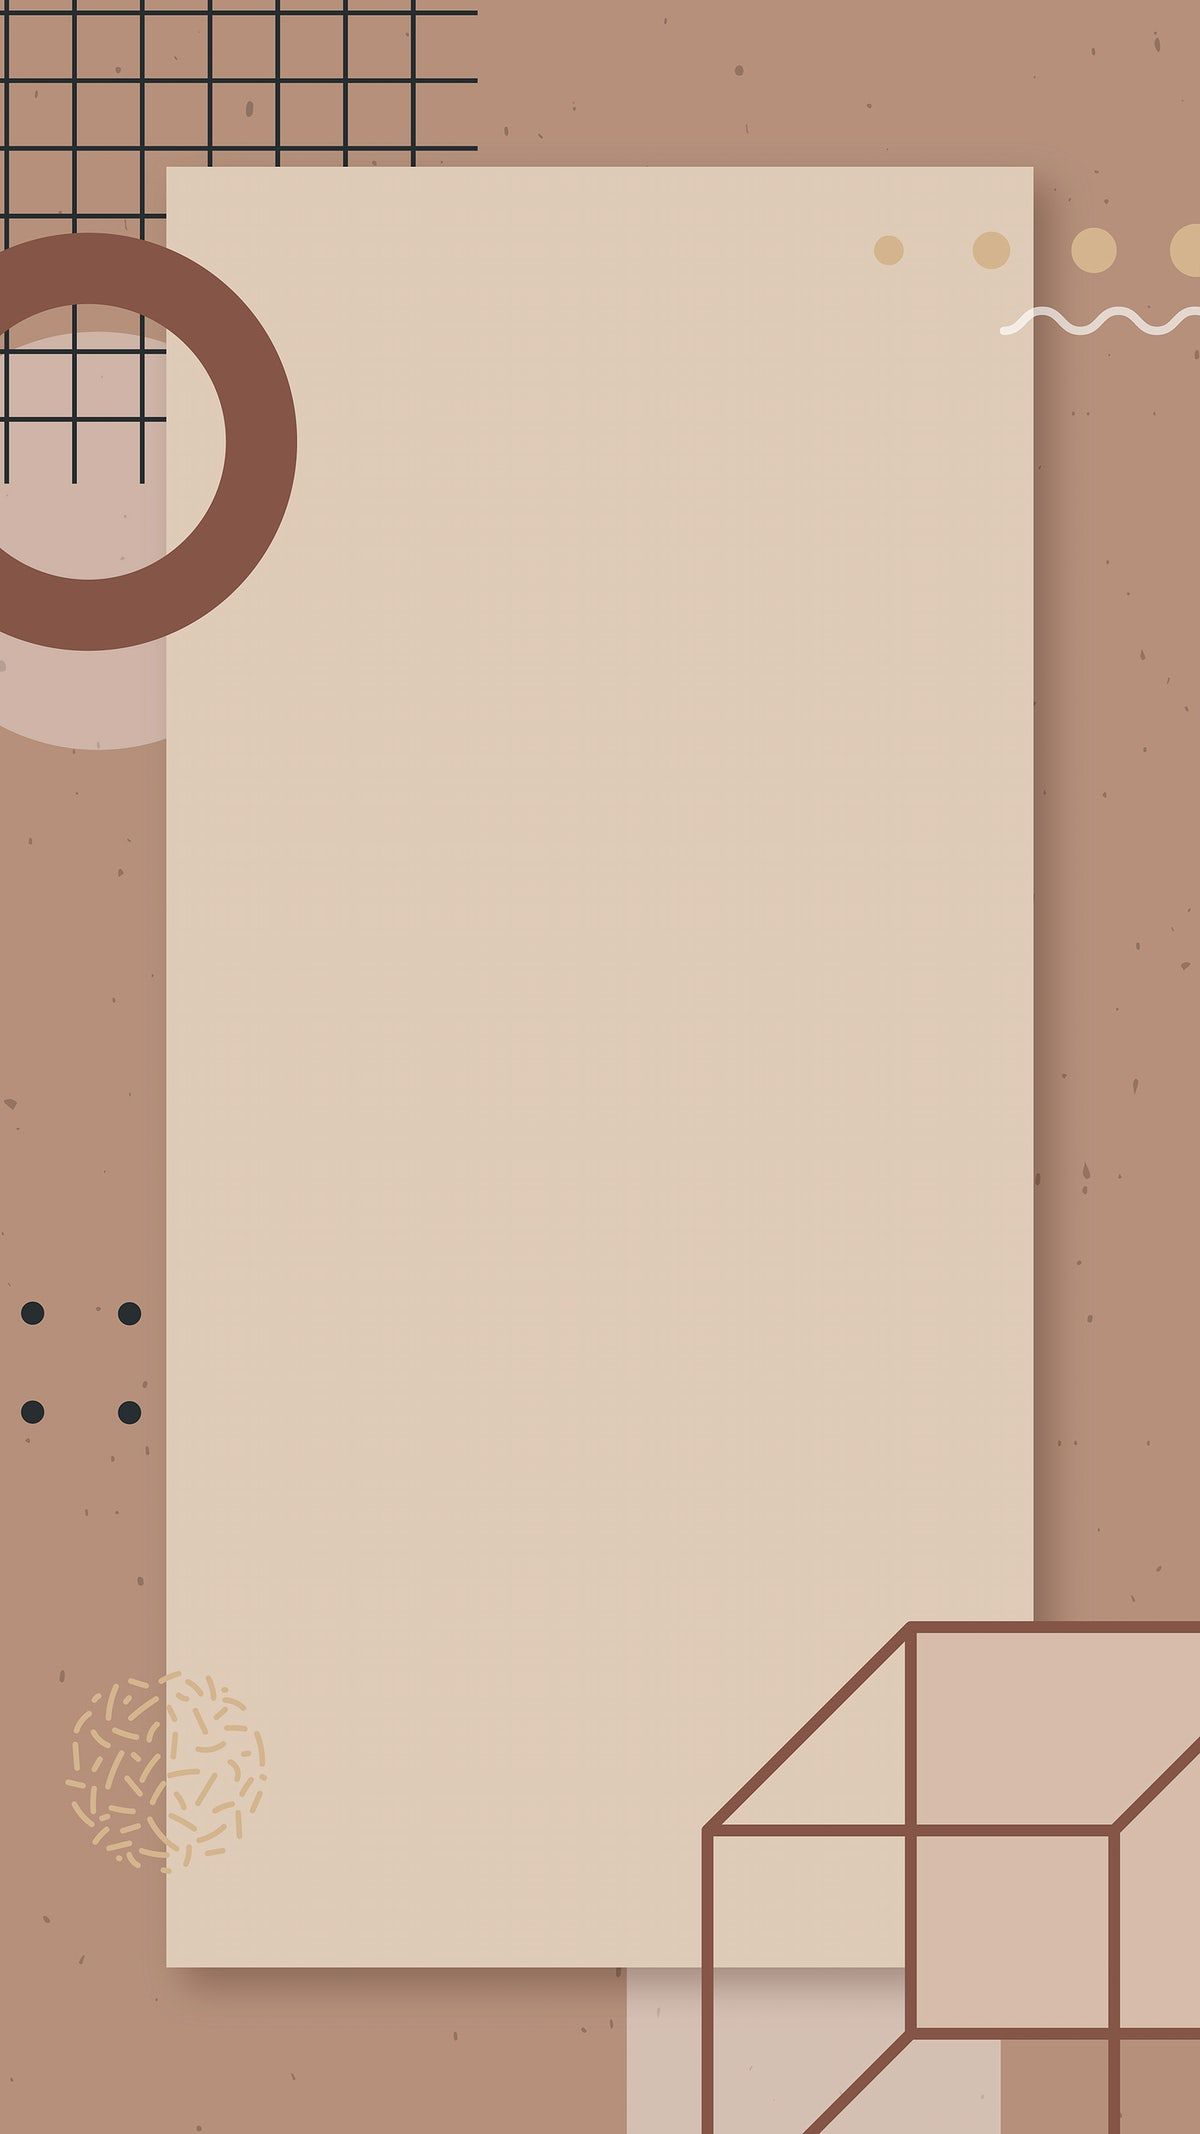 Download premium vector of Earth tone Memphis Facebook story background vector by Aew about beige background, abstract, abstract background, abstract background design, and abstract background images 2210992